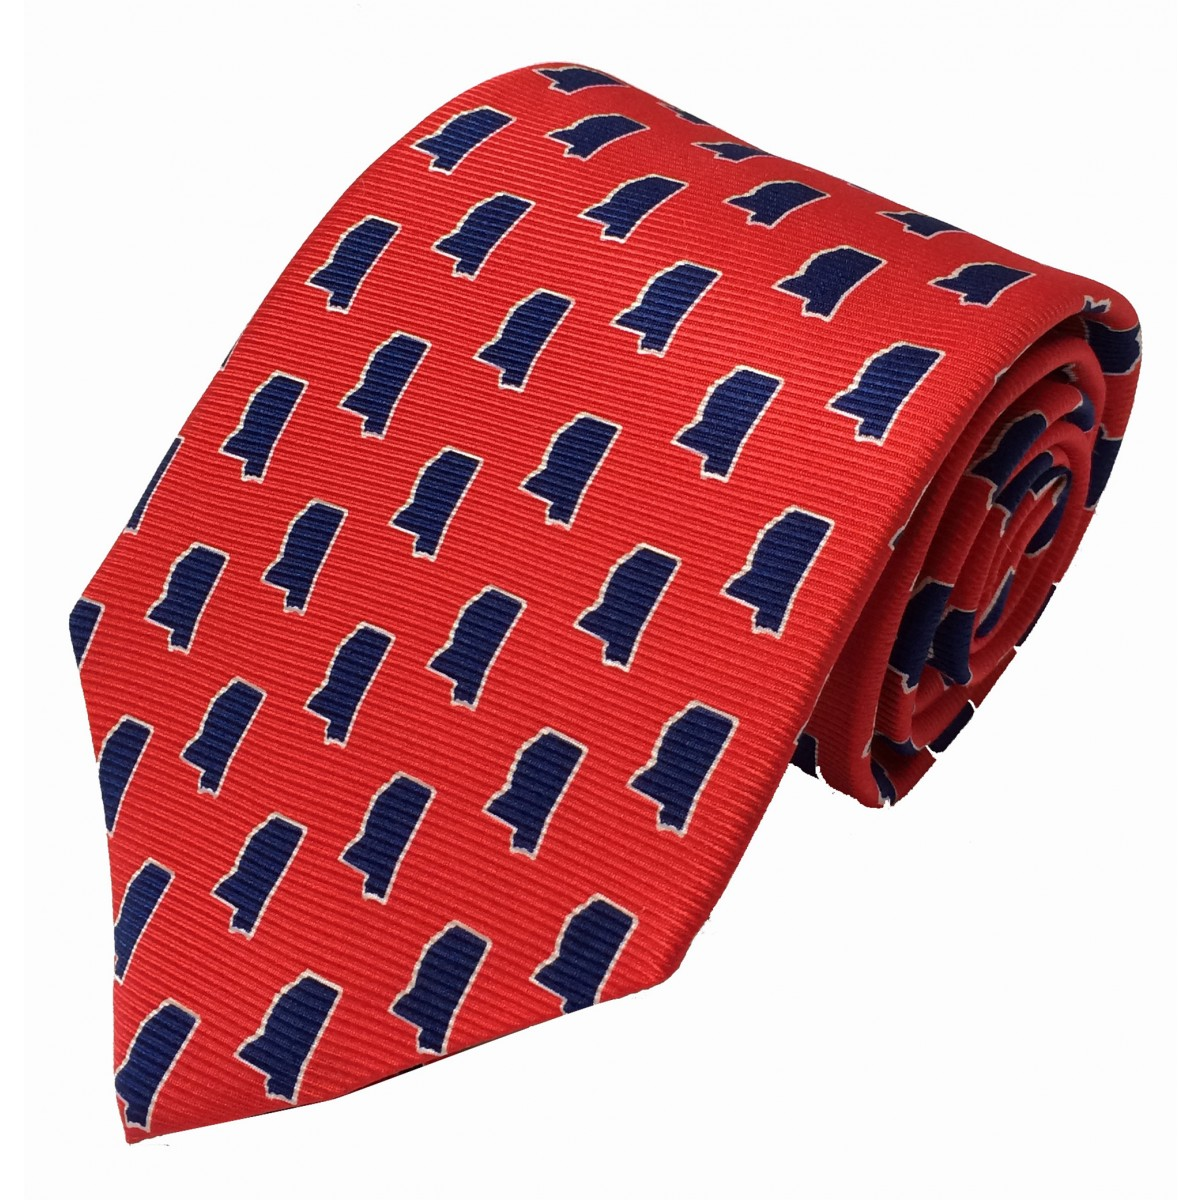 MS Gameday Red Tie